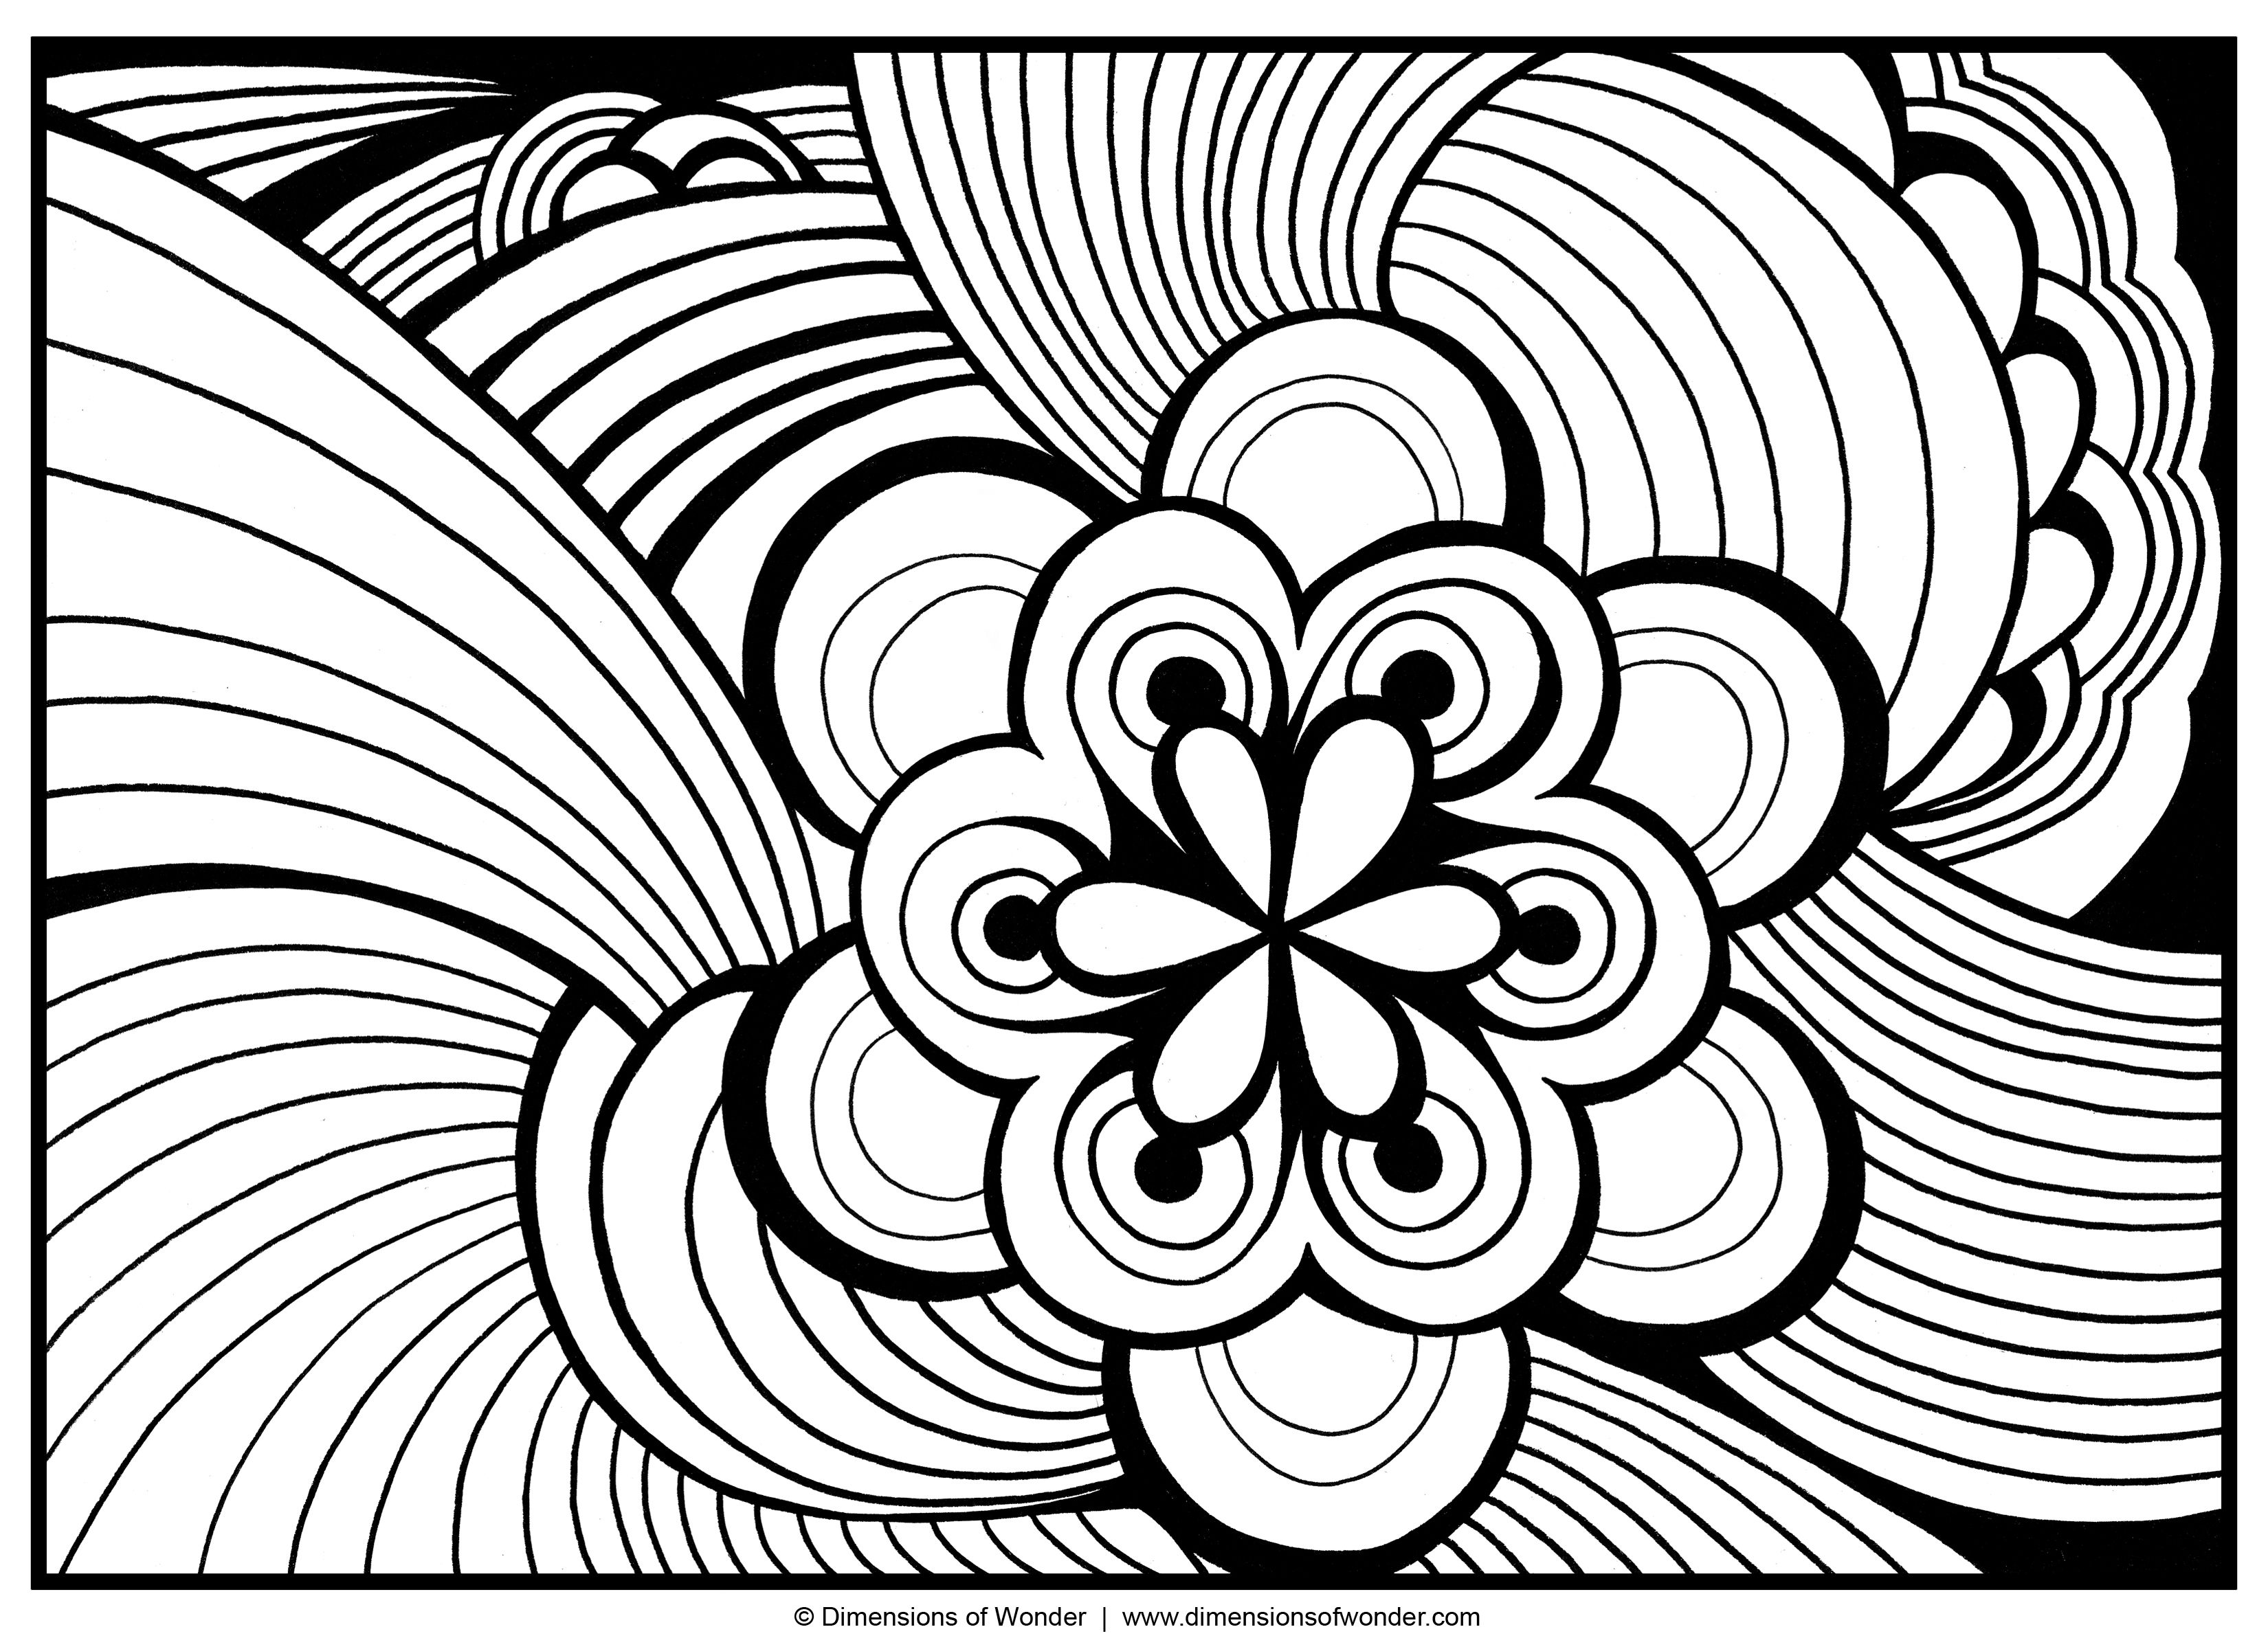 abstract coloring pages free large images - Coloring Books For Teens